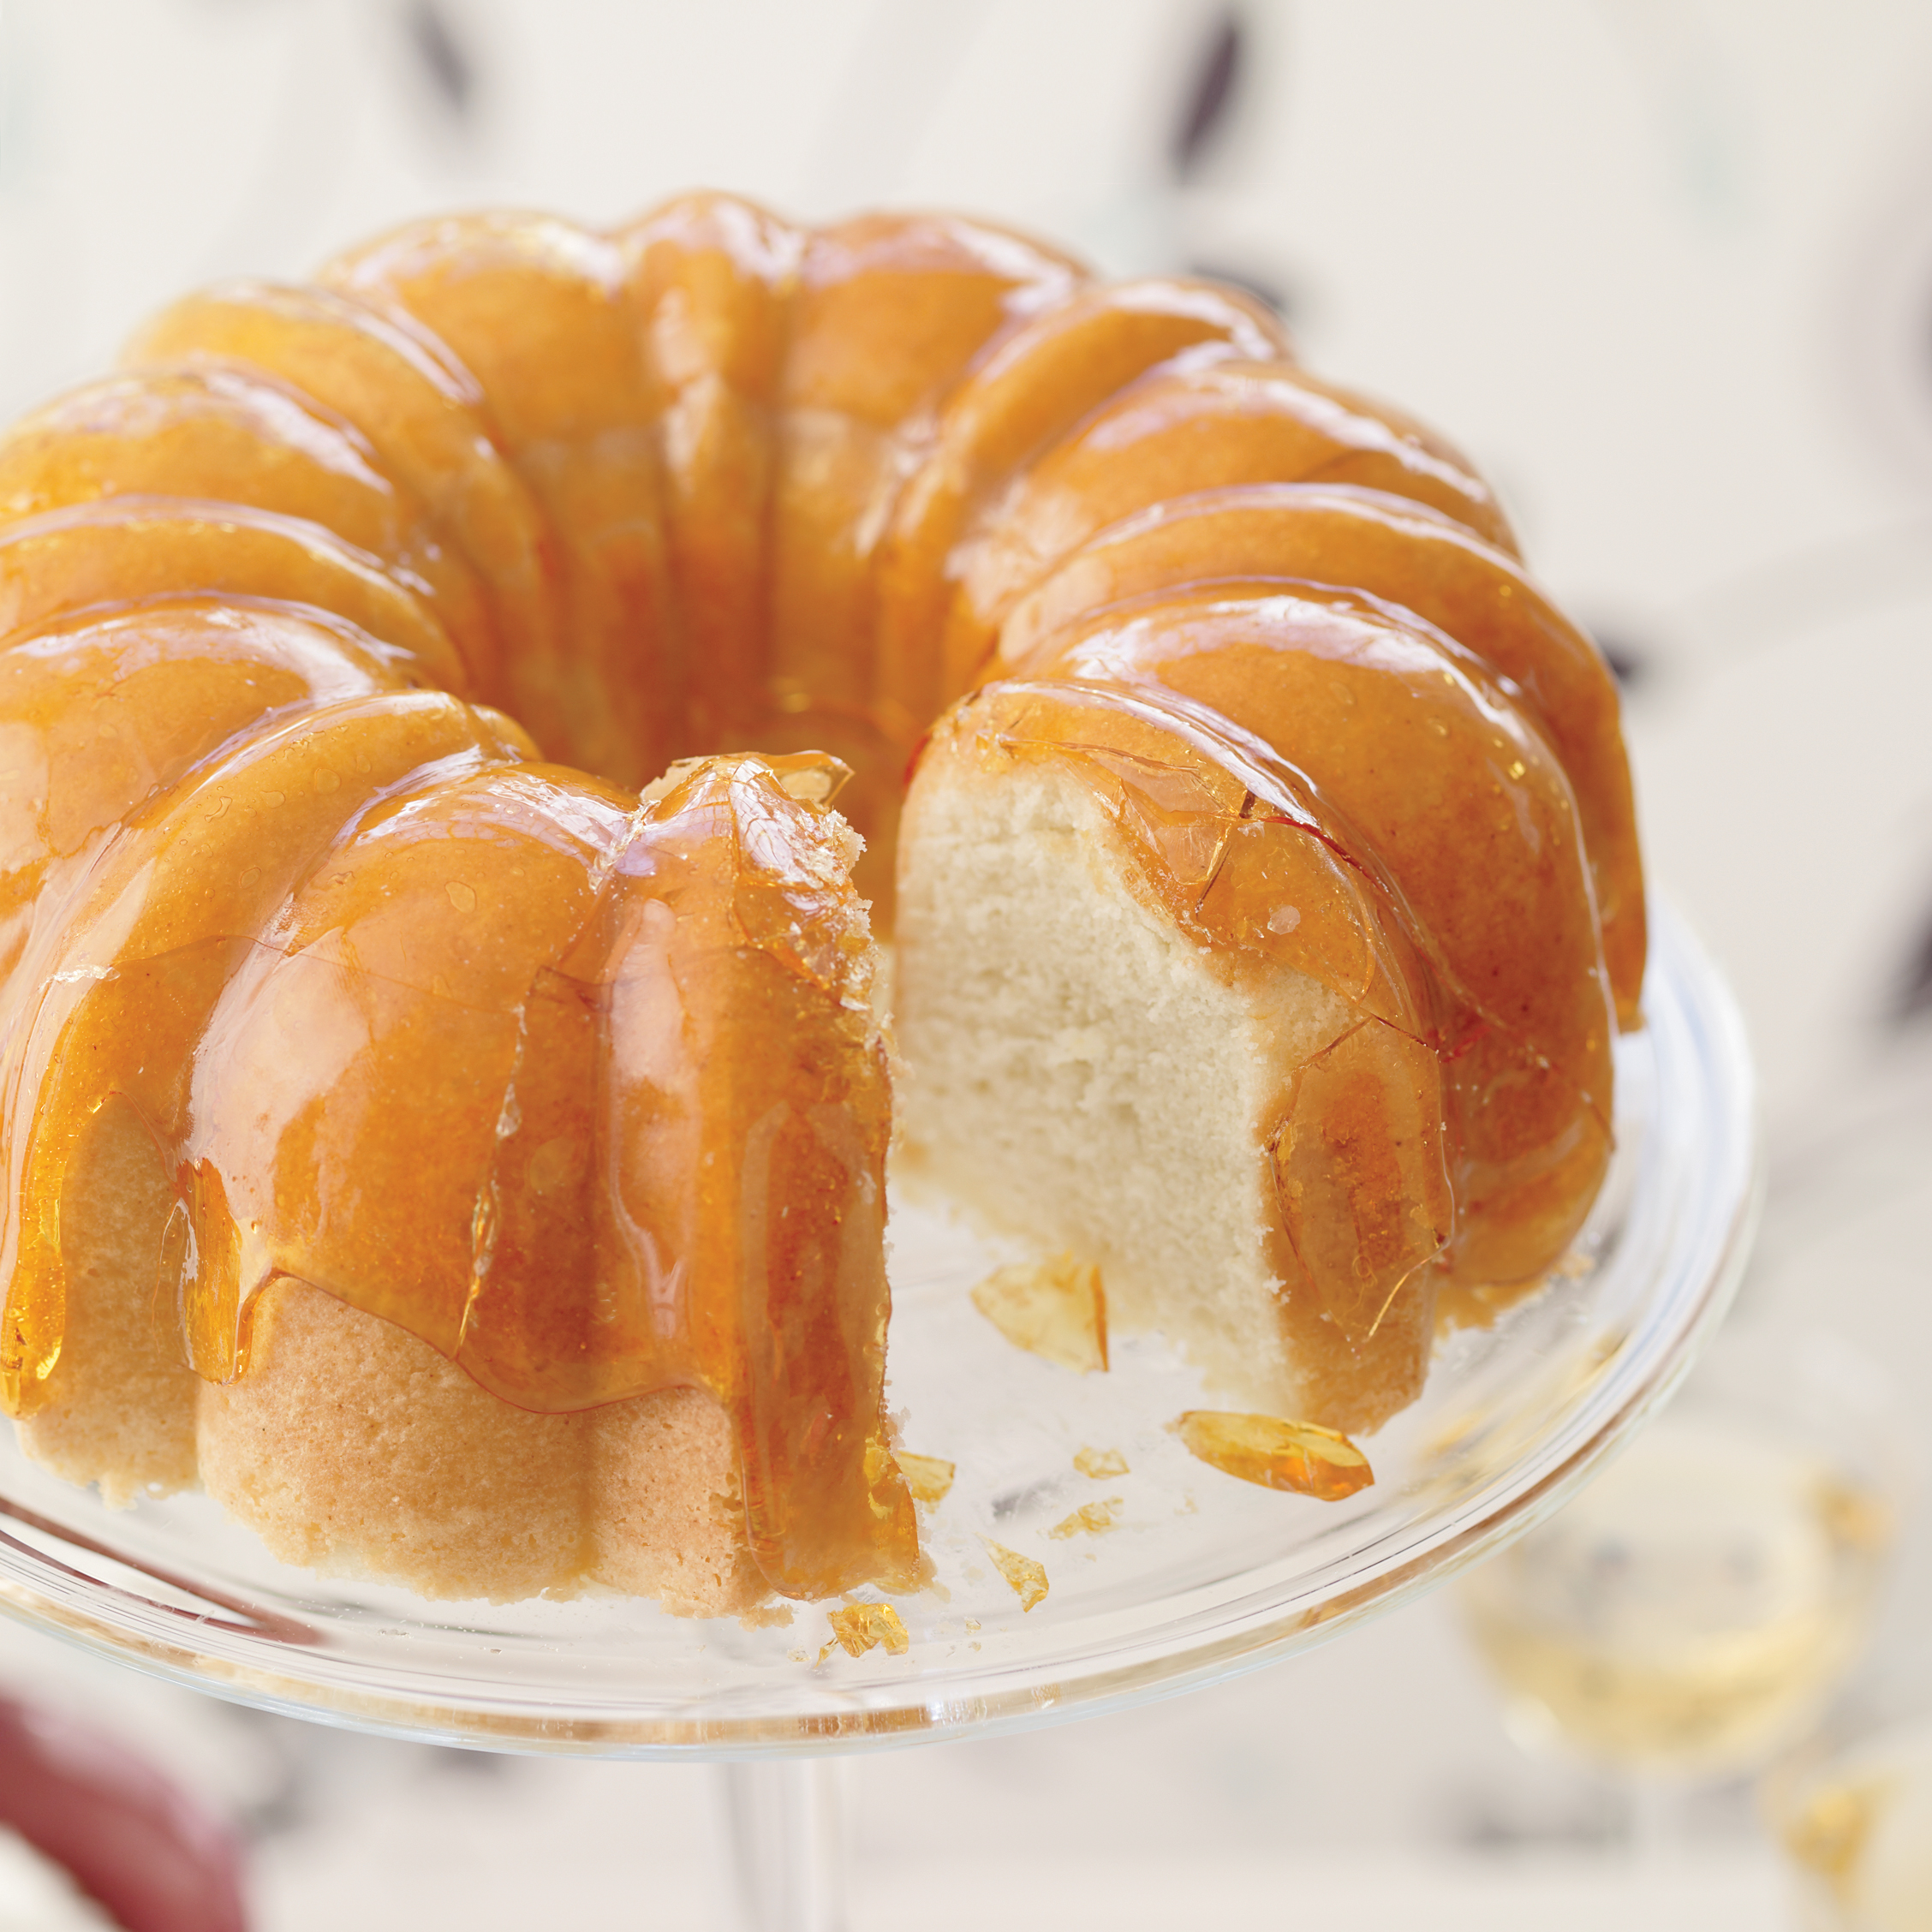 Lemon Pound Cake With Chocolate Glaze